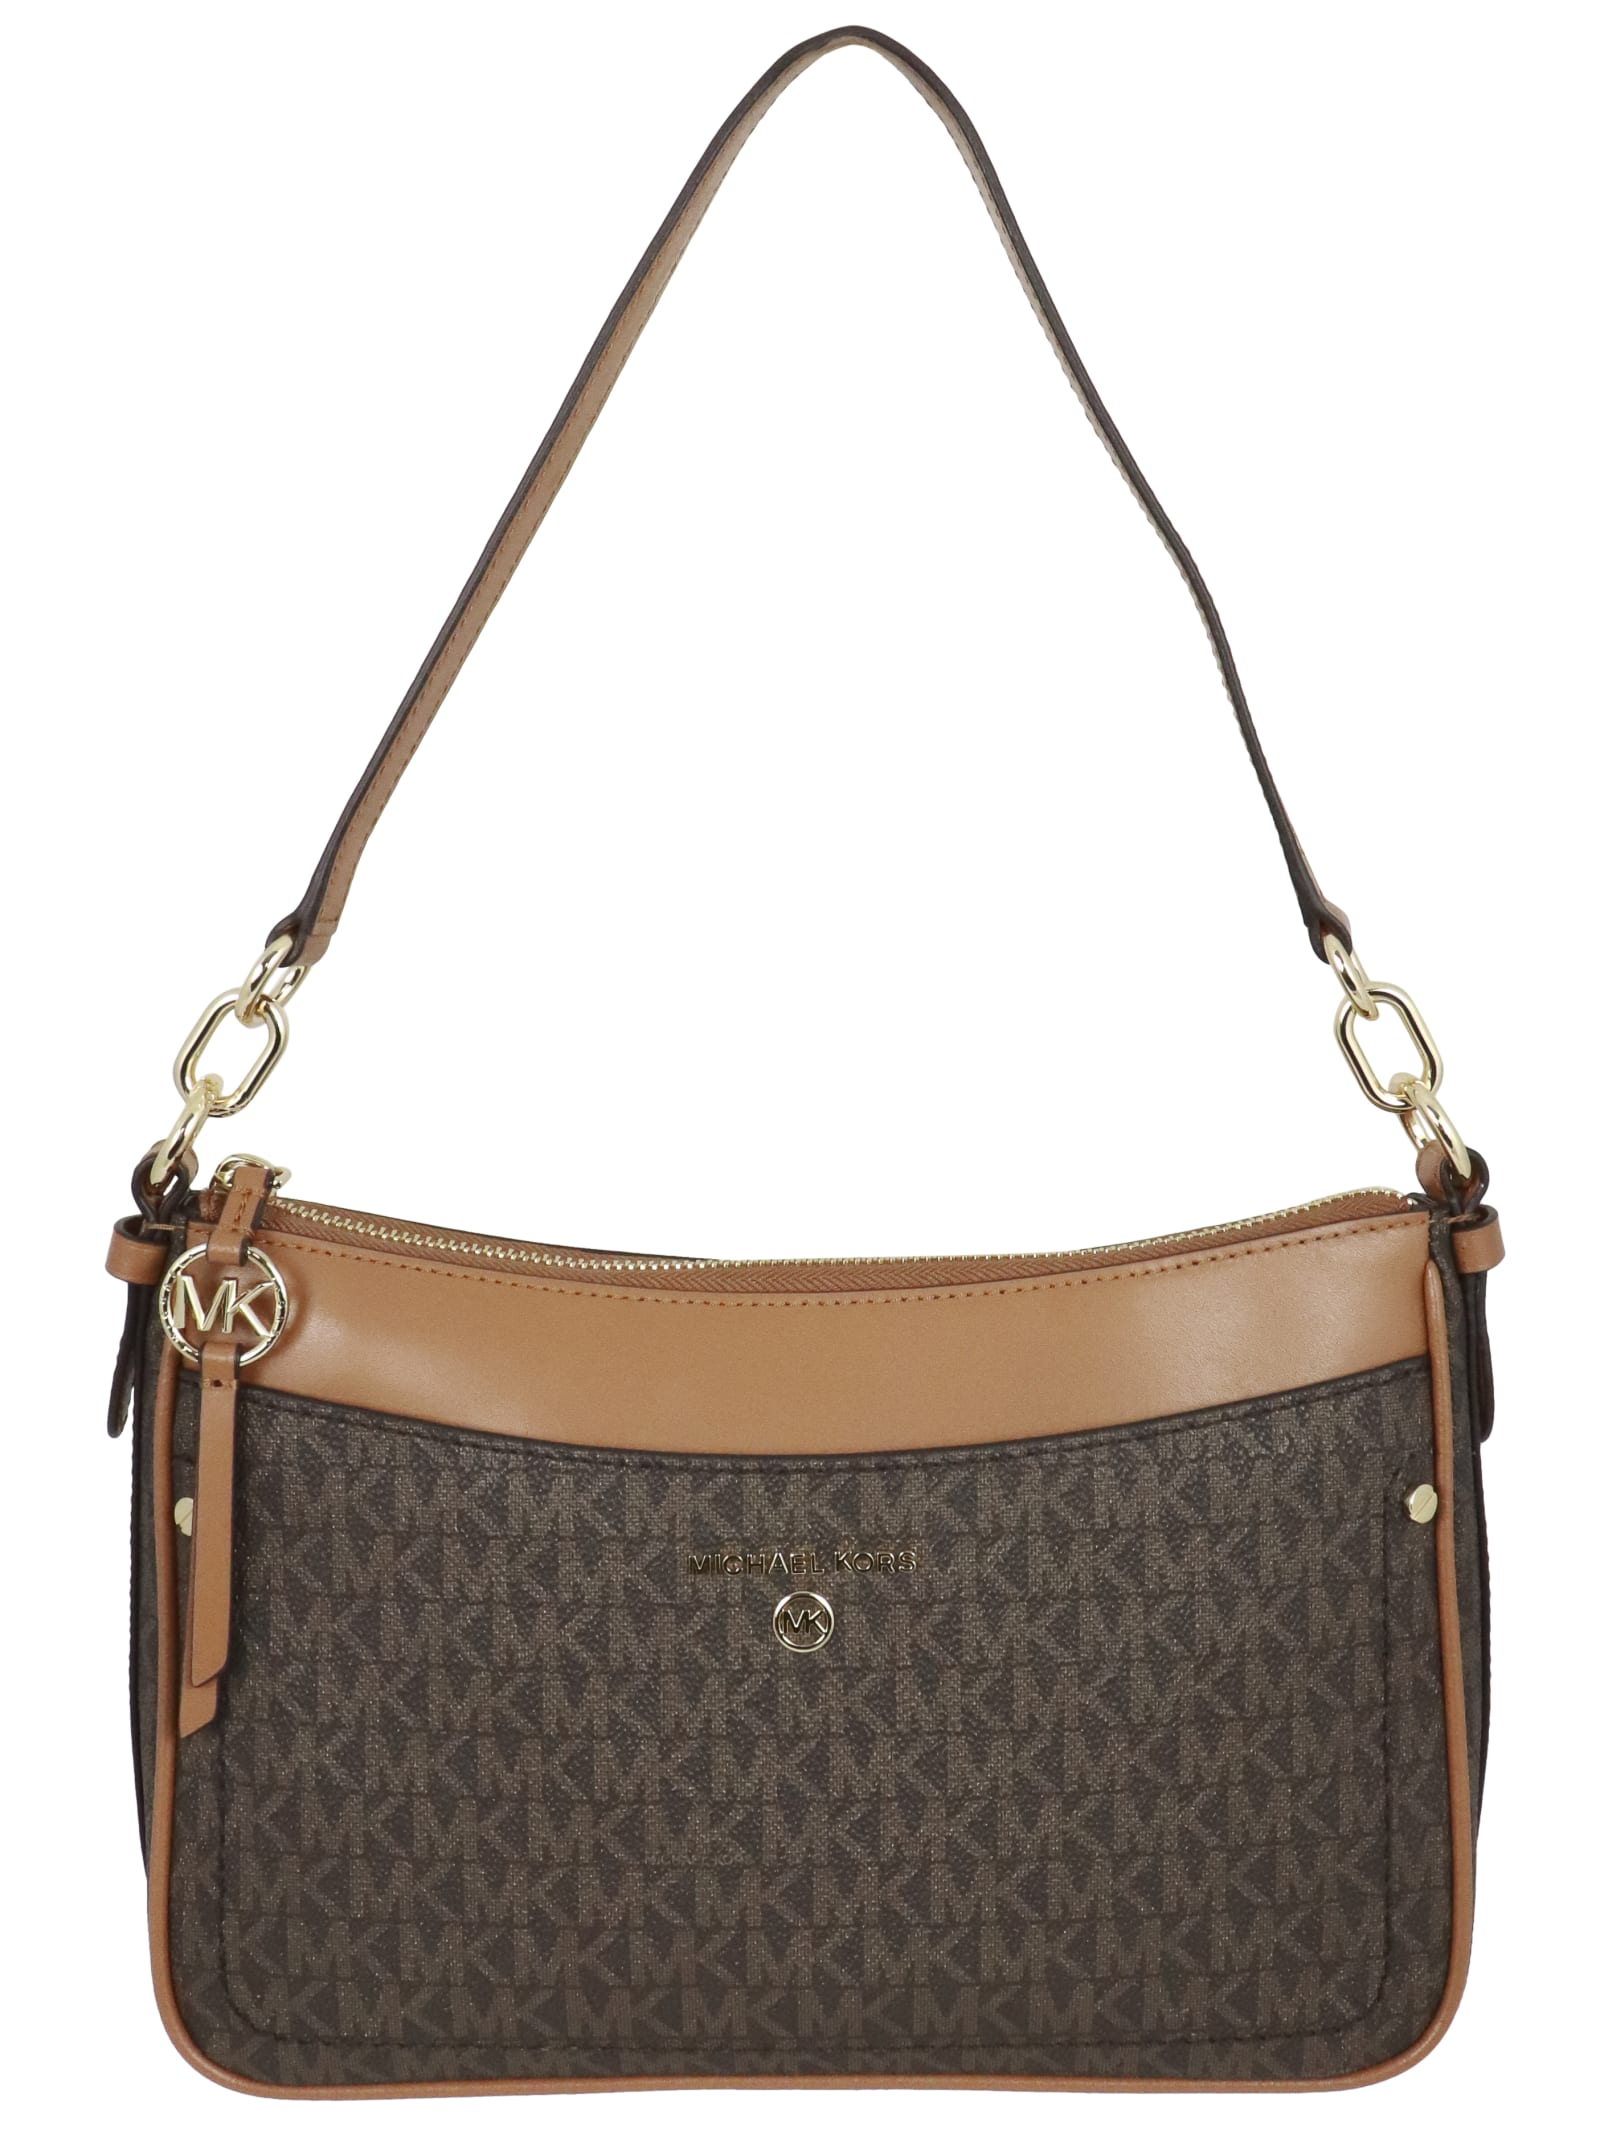 Michael Kors Jet Set Charm Shoulder Bag